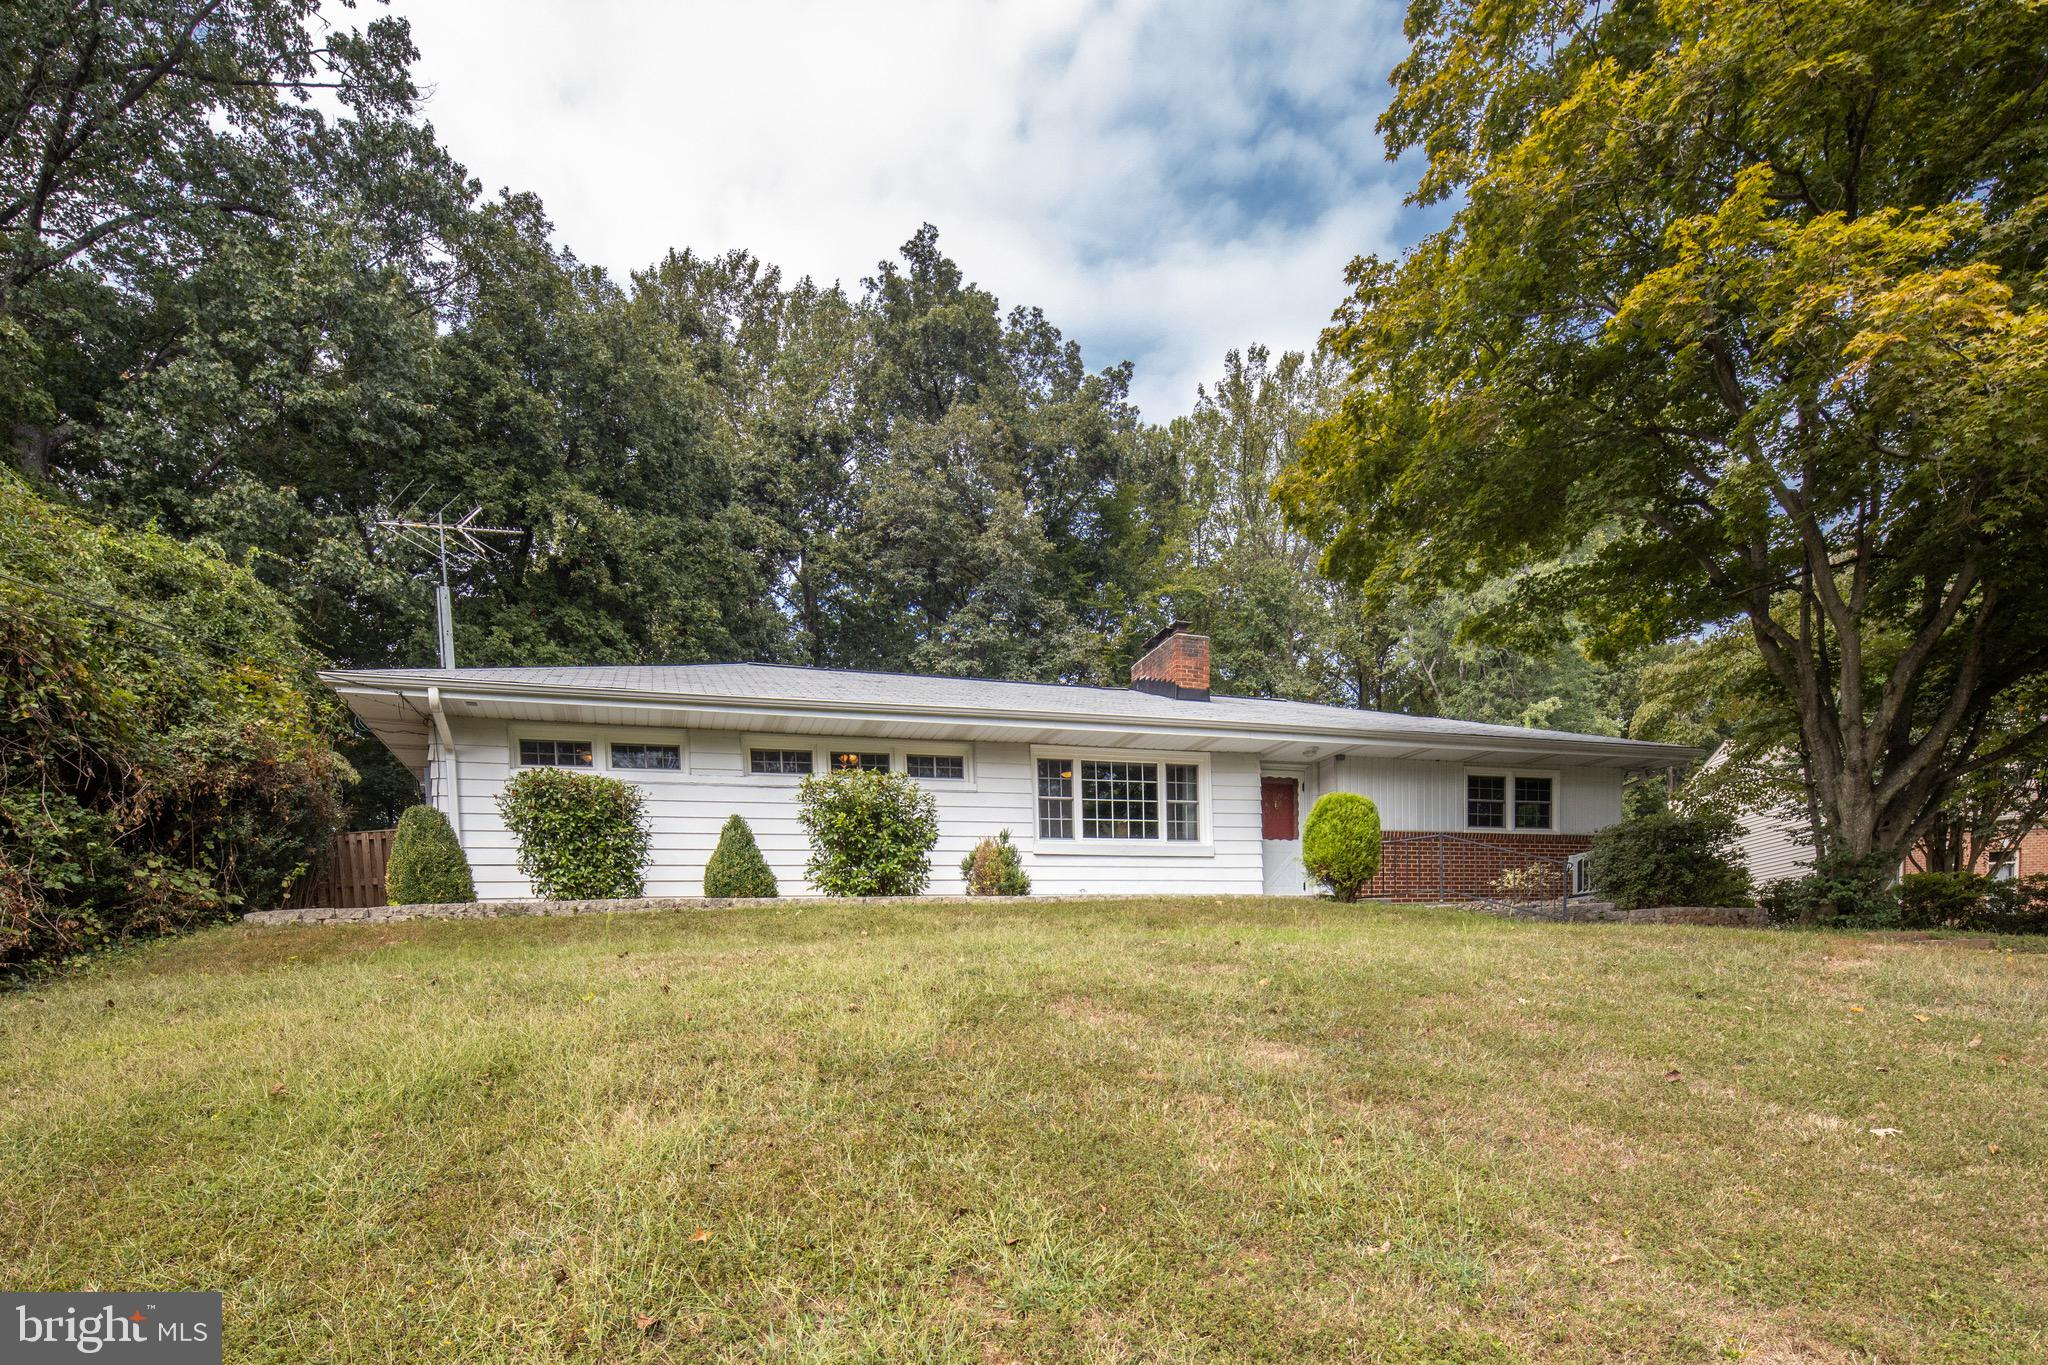 Fabulous one-level, updated home inside the beltway. Easy access to 395, 495, and 236. Set in a rural setting on a beautiful lot (.73 acres) in Annandale Acres. This home has many upgraded features including new windows (2015), modern kitchen, and a great open layout for entertaining. A bright back-porch and breezeway make for easy access to the garage. A rolling front yard and serene backyard make this beautiful home a must-see!